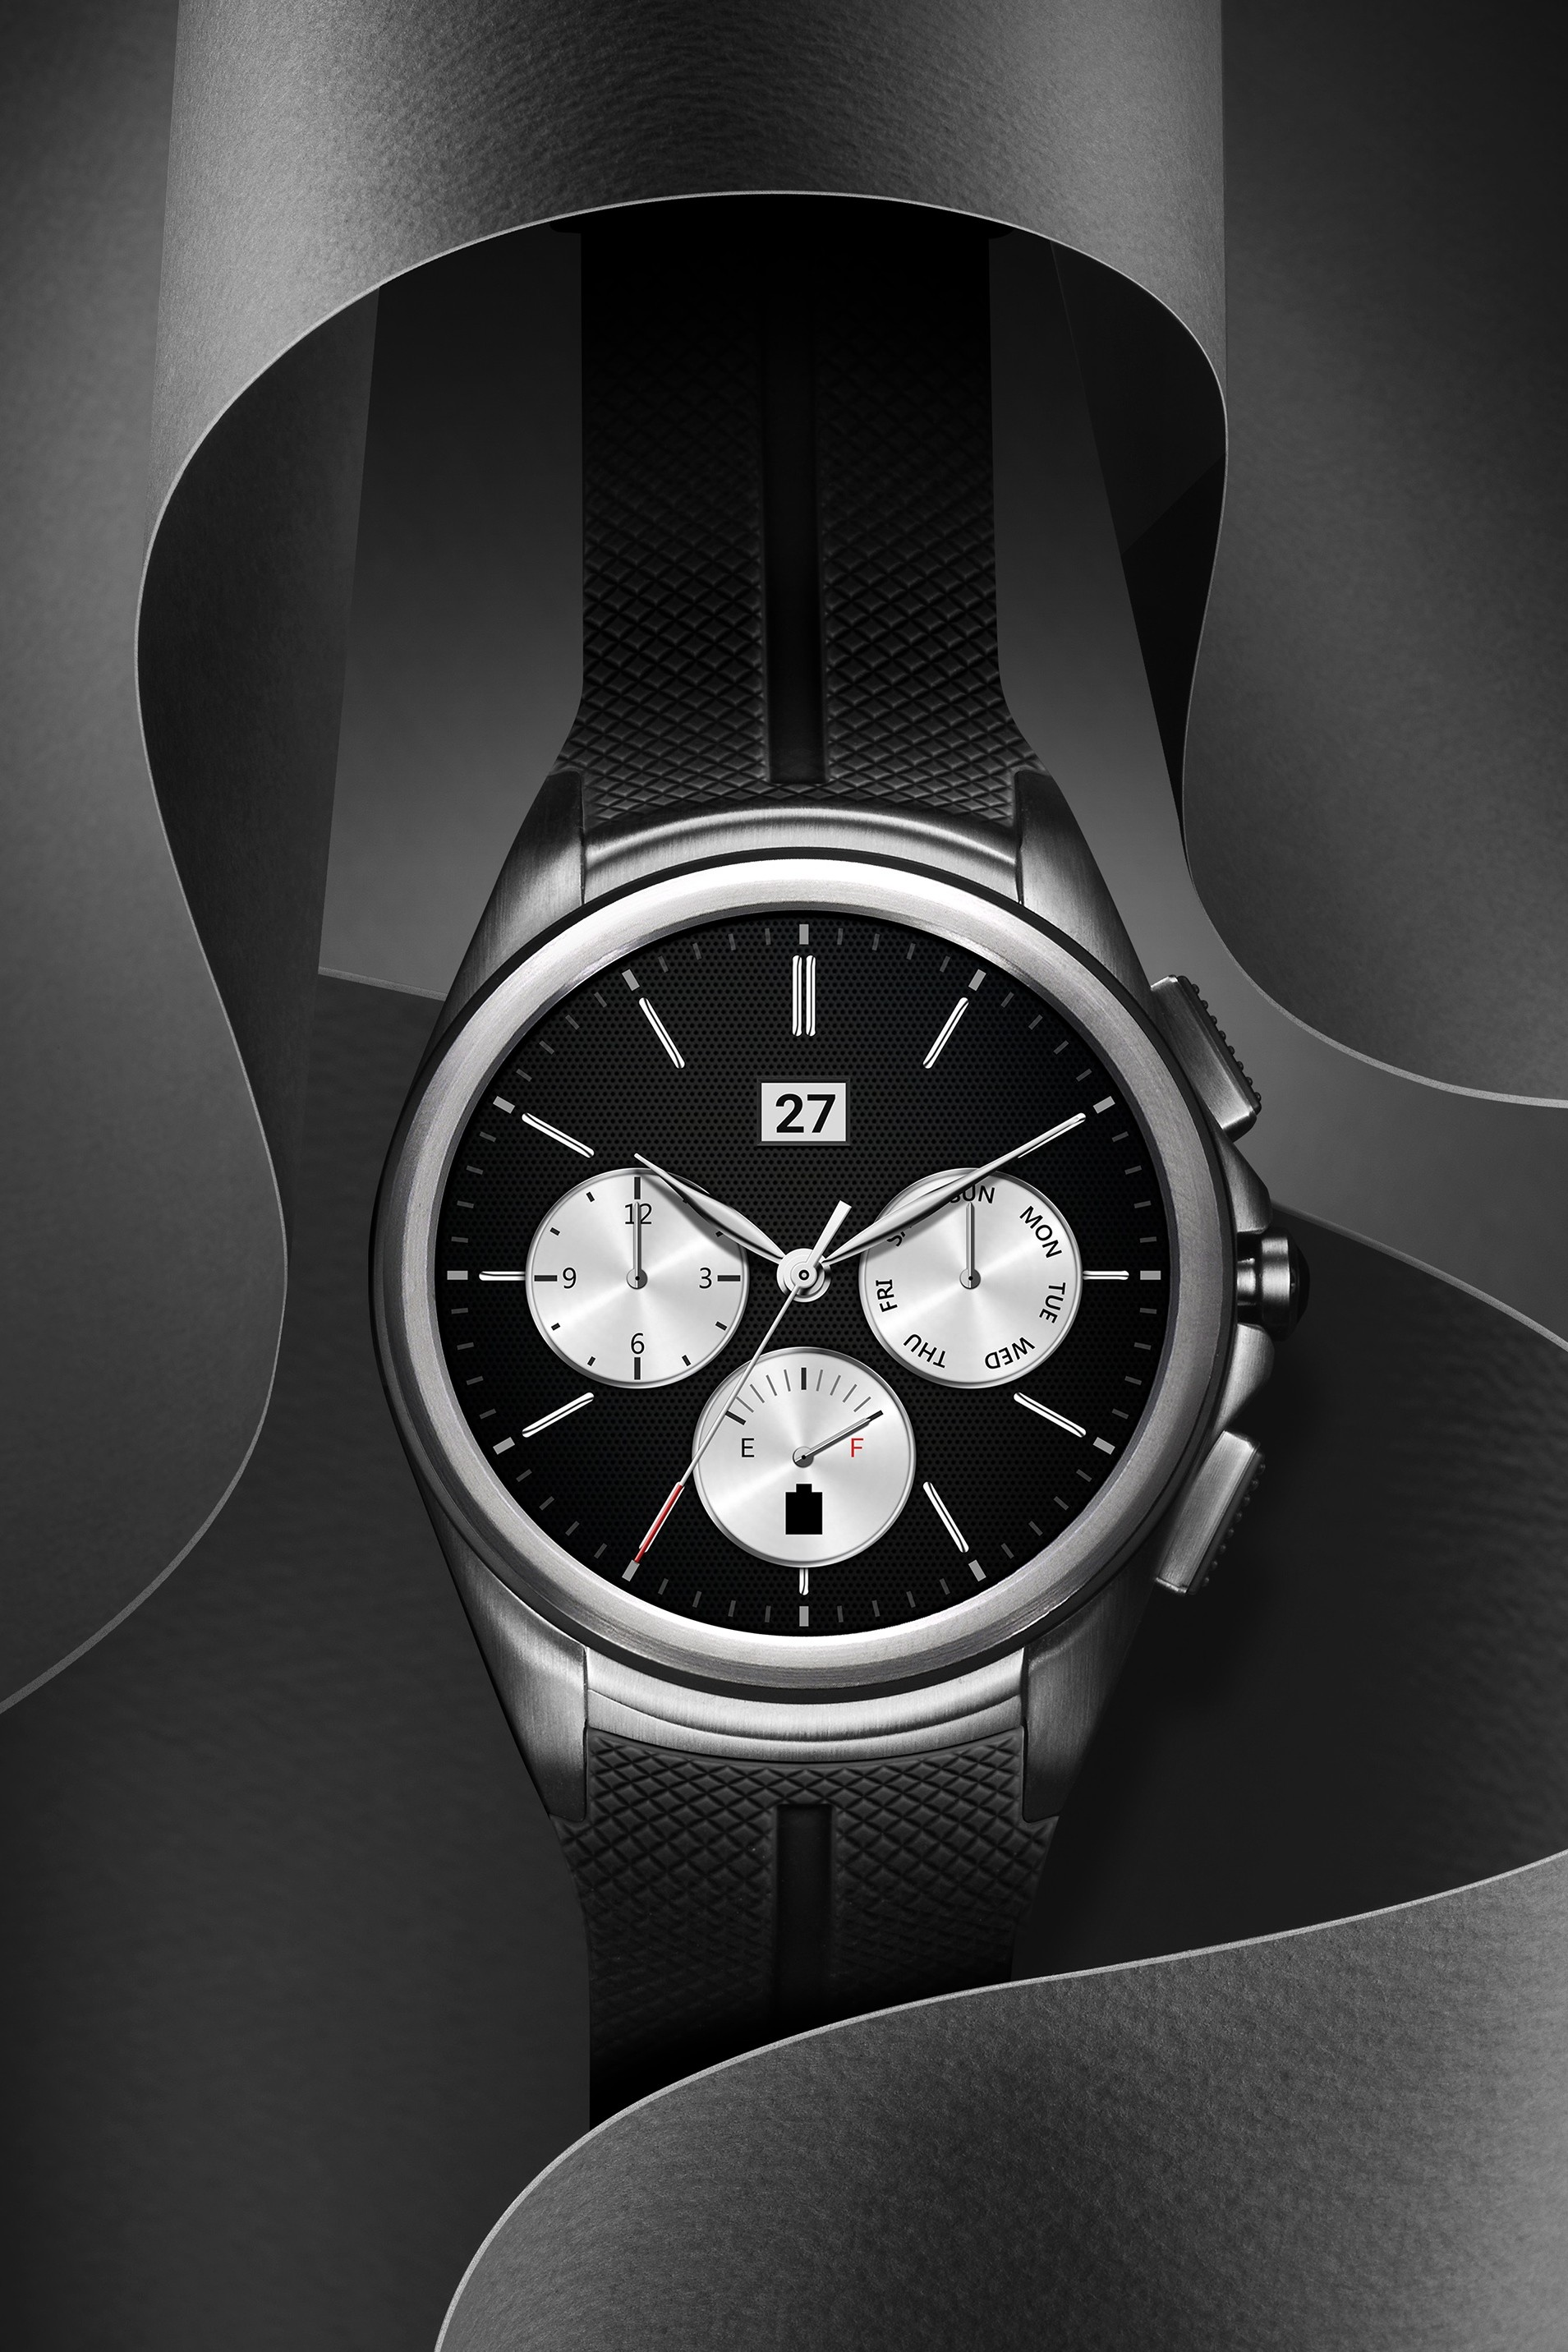 The front side of the LG Watch Urbane 2nd Edition in Space Black